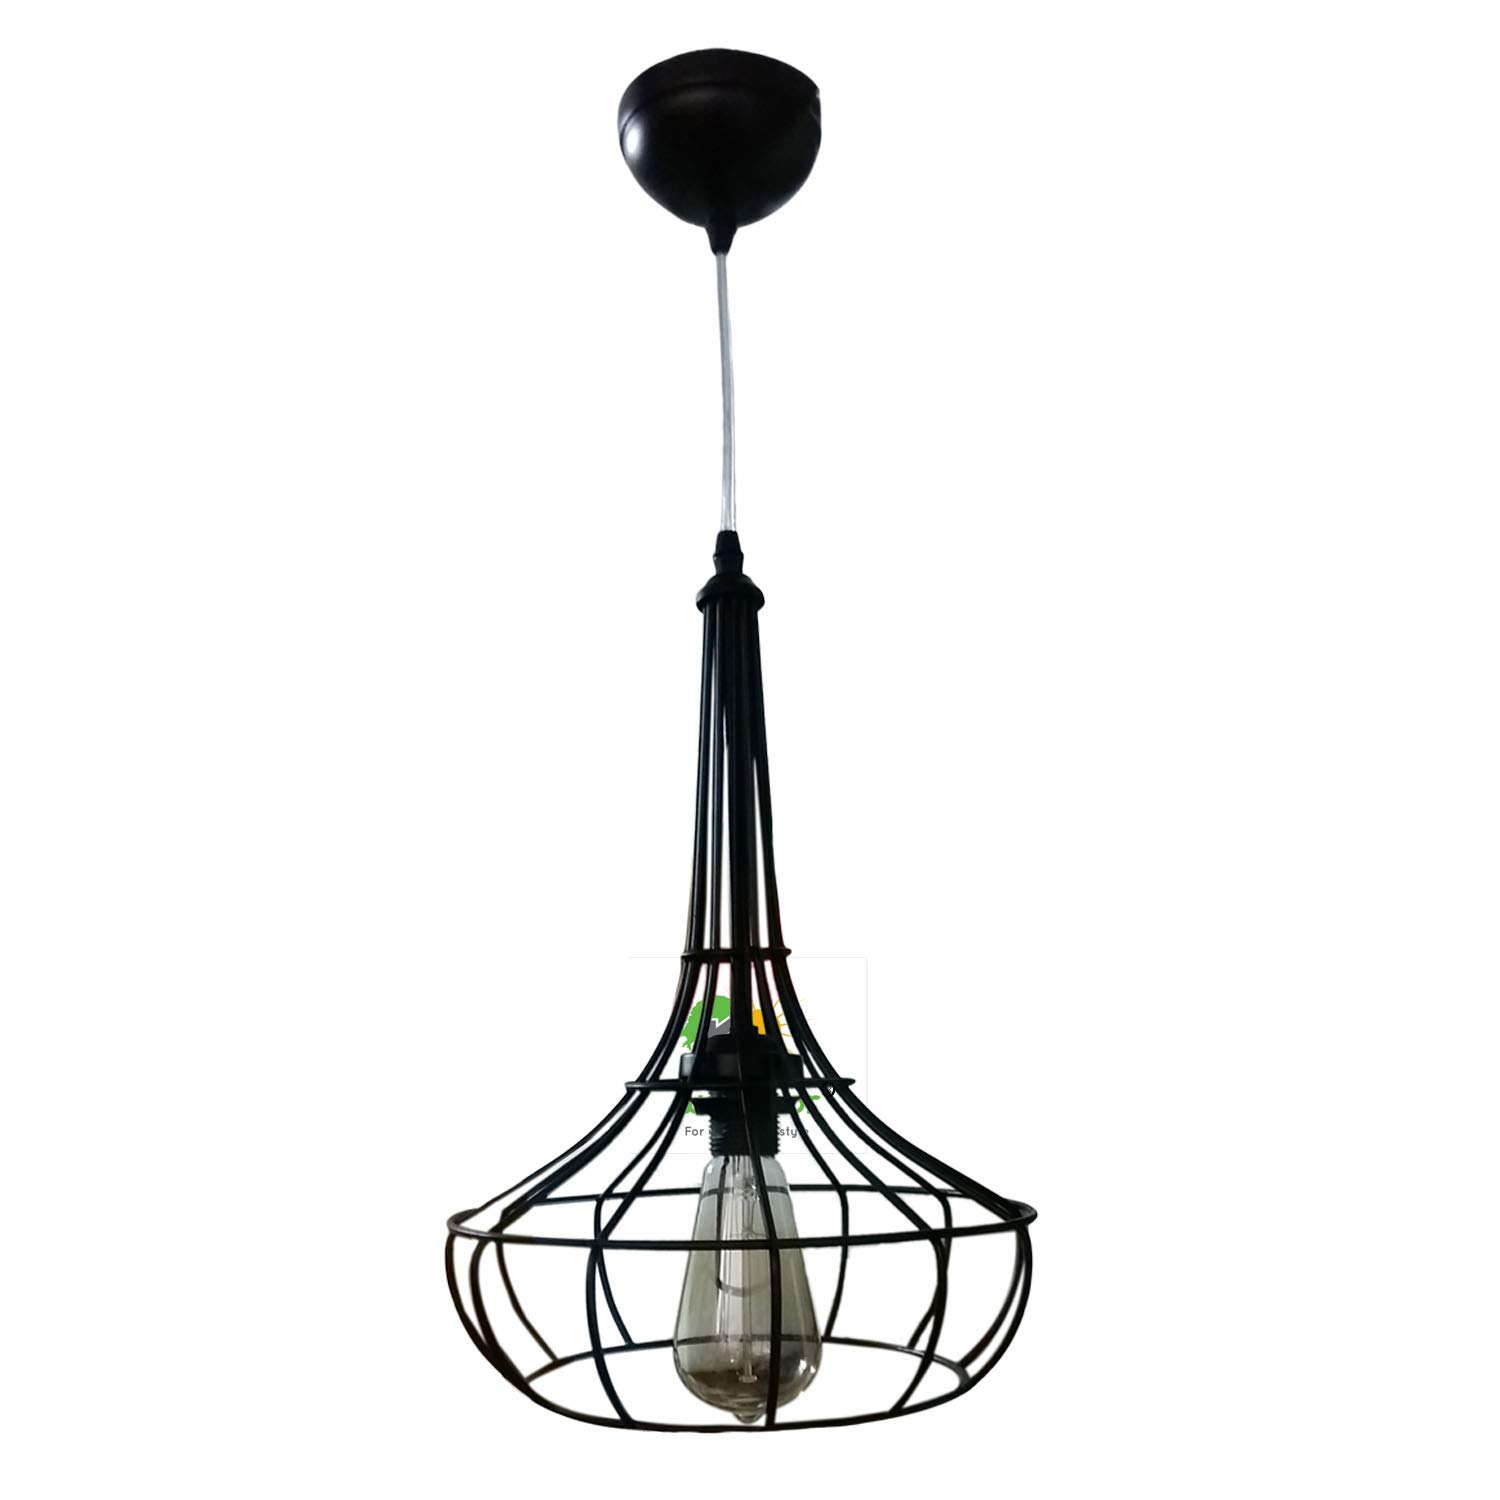 1500x1500 Buy Antique Black Metal Ceiling Lamp For Hoteldrawing